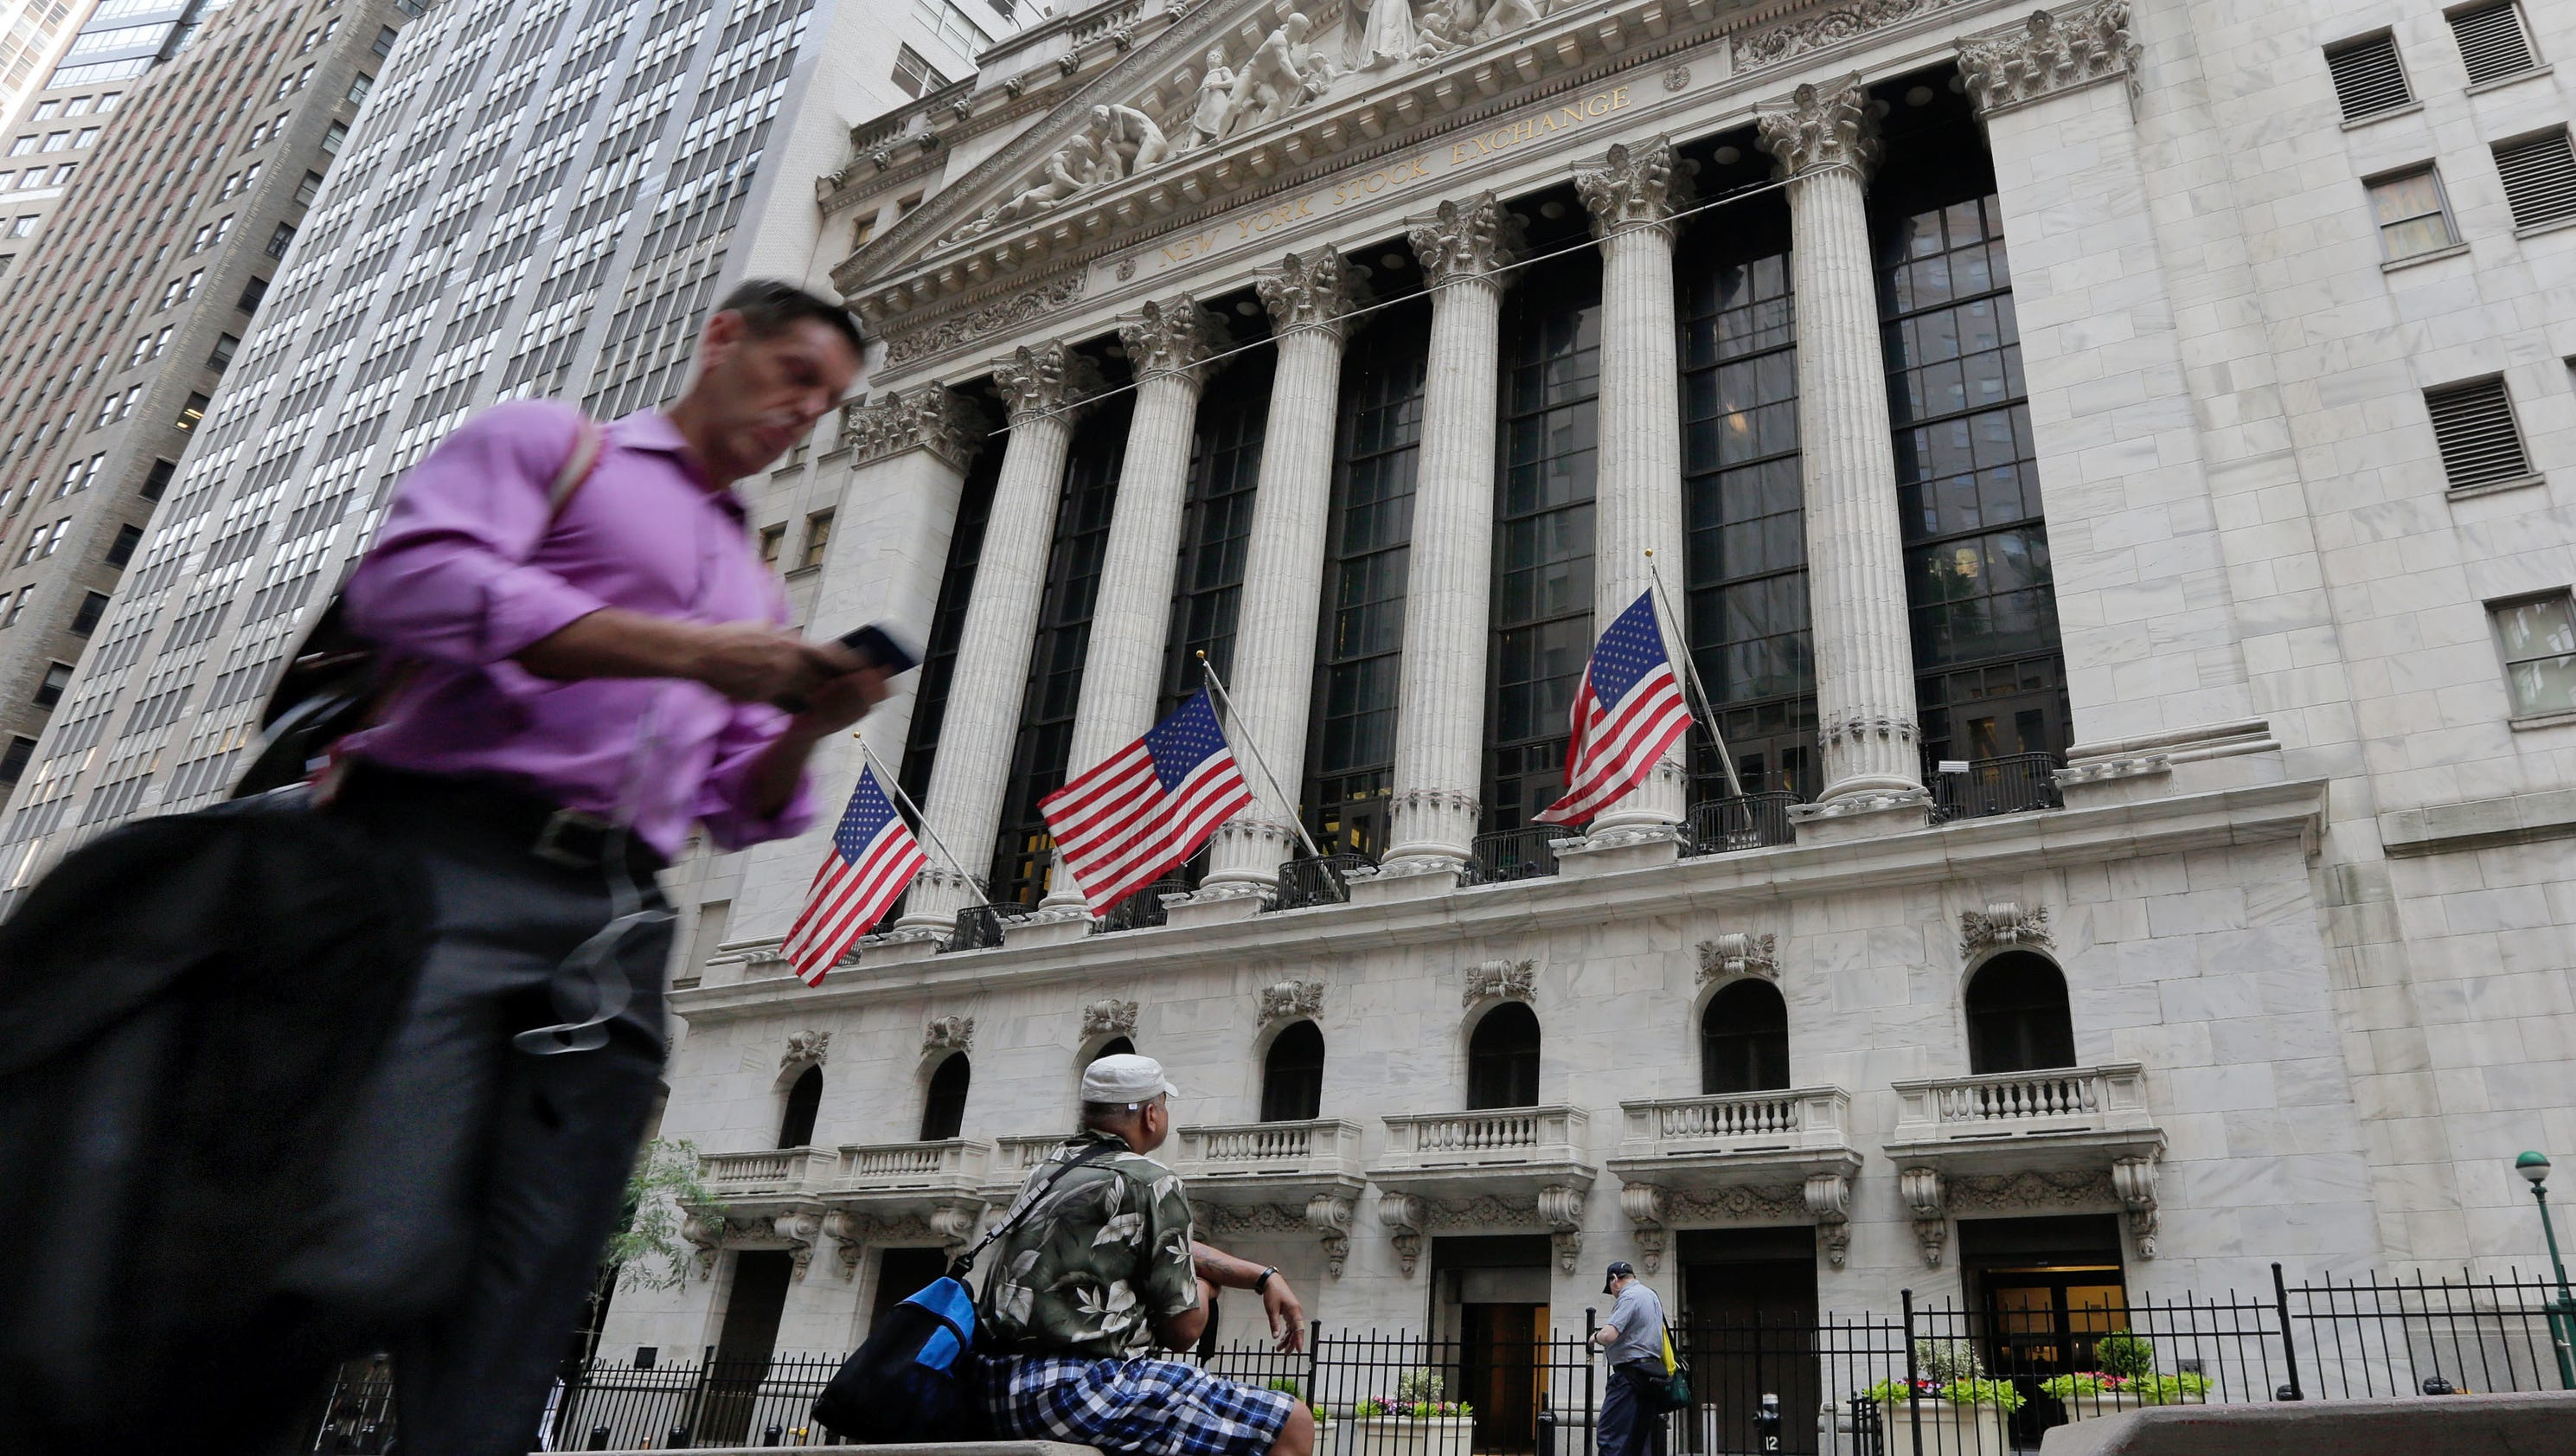 What are the greater implications of all the stock market concerns?